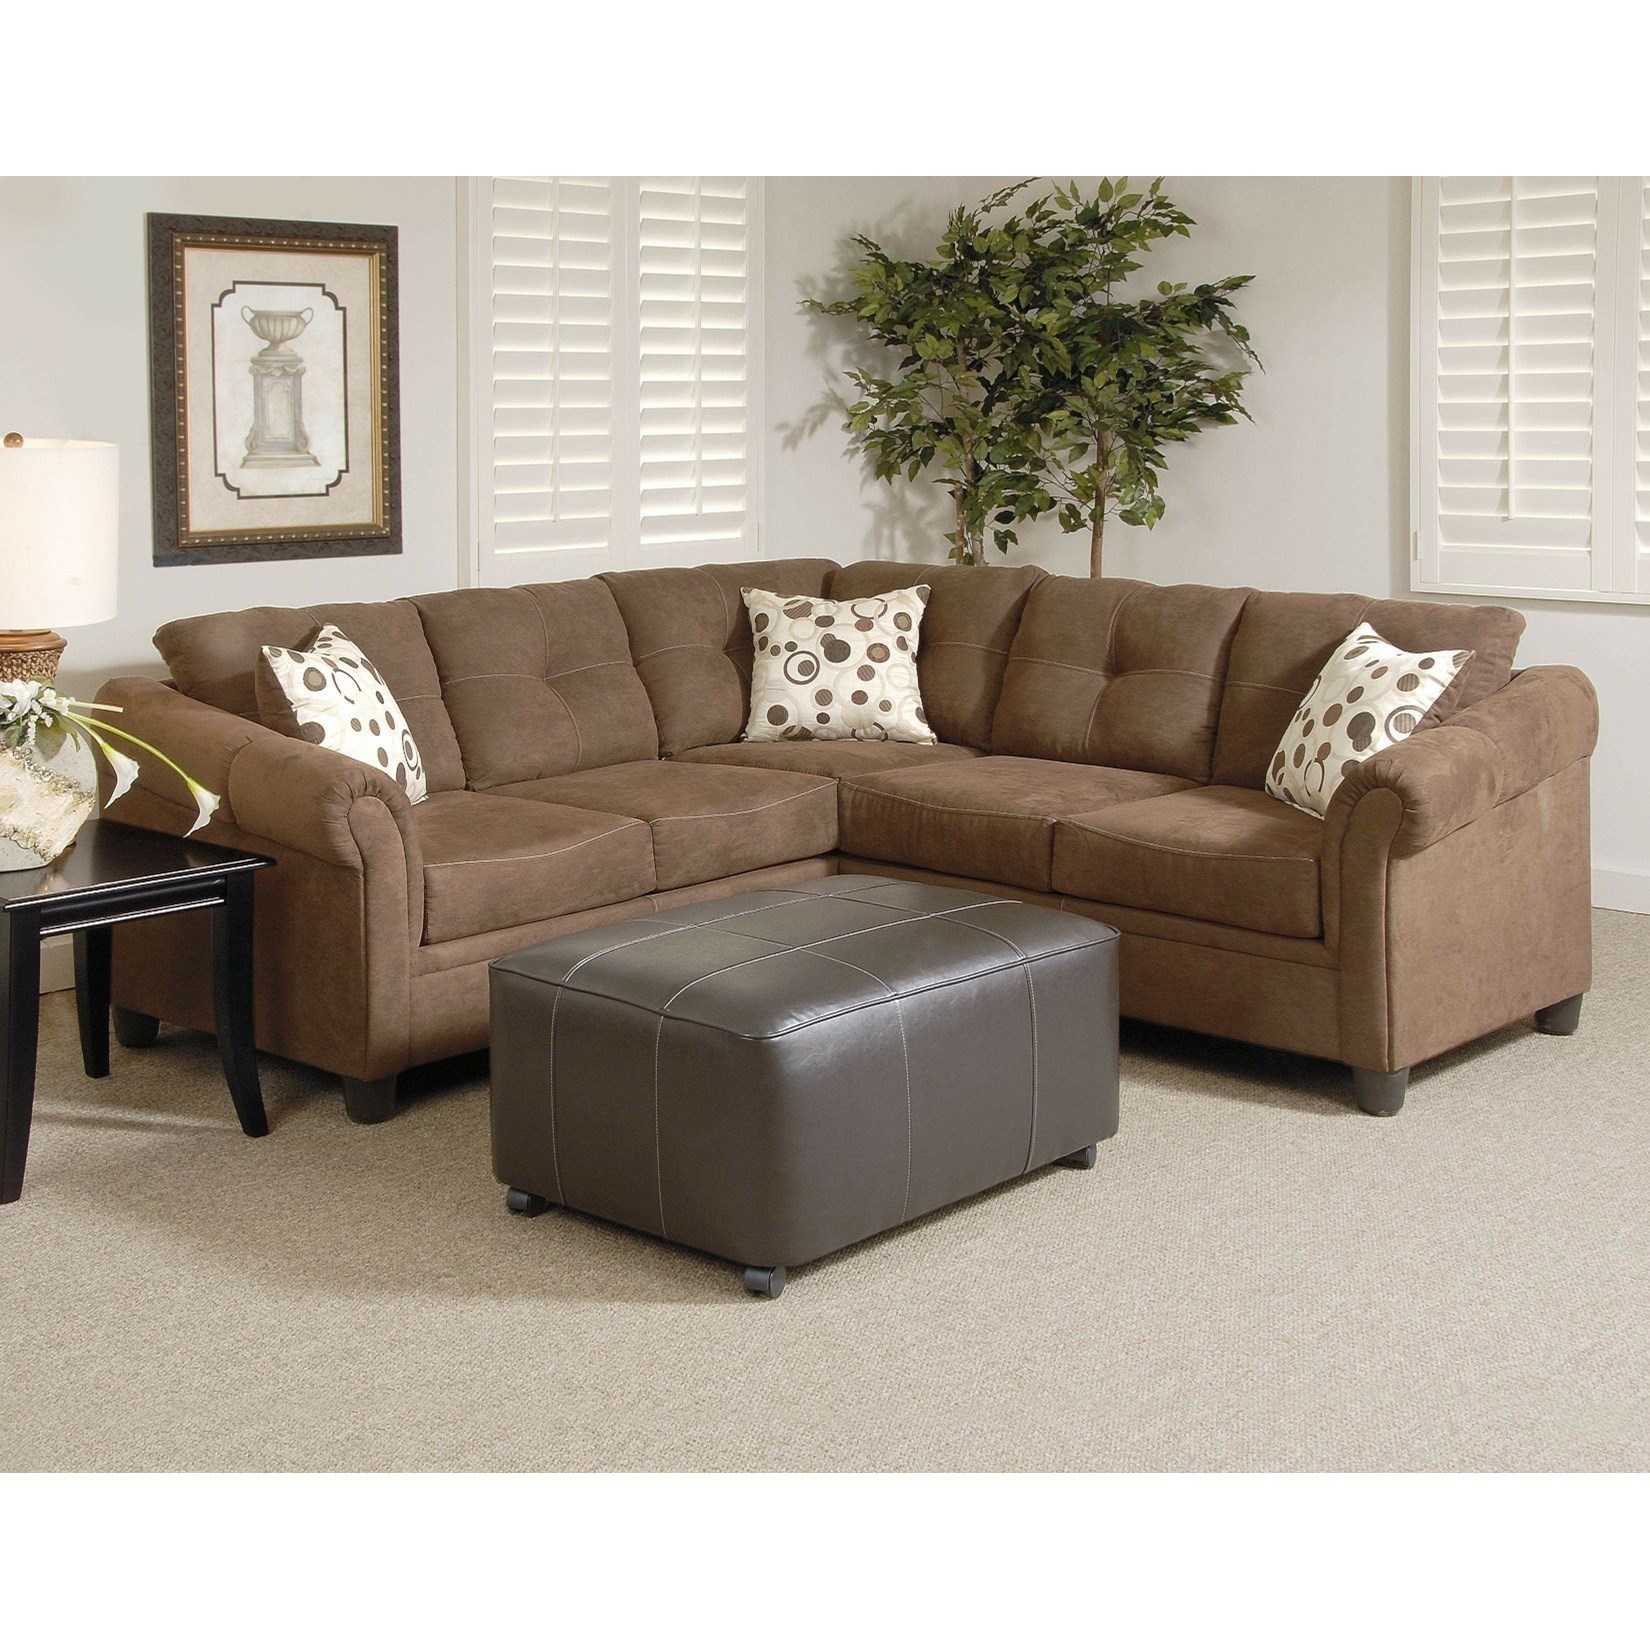 Delicieux 900 Casual Sectional Sofa With Tufted Pillow Backs By Serta Upholstery